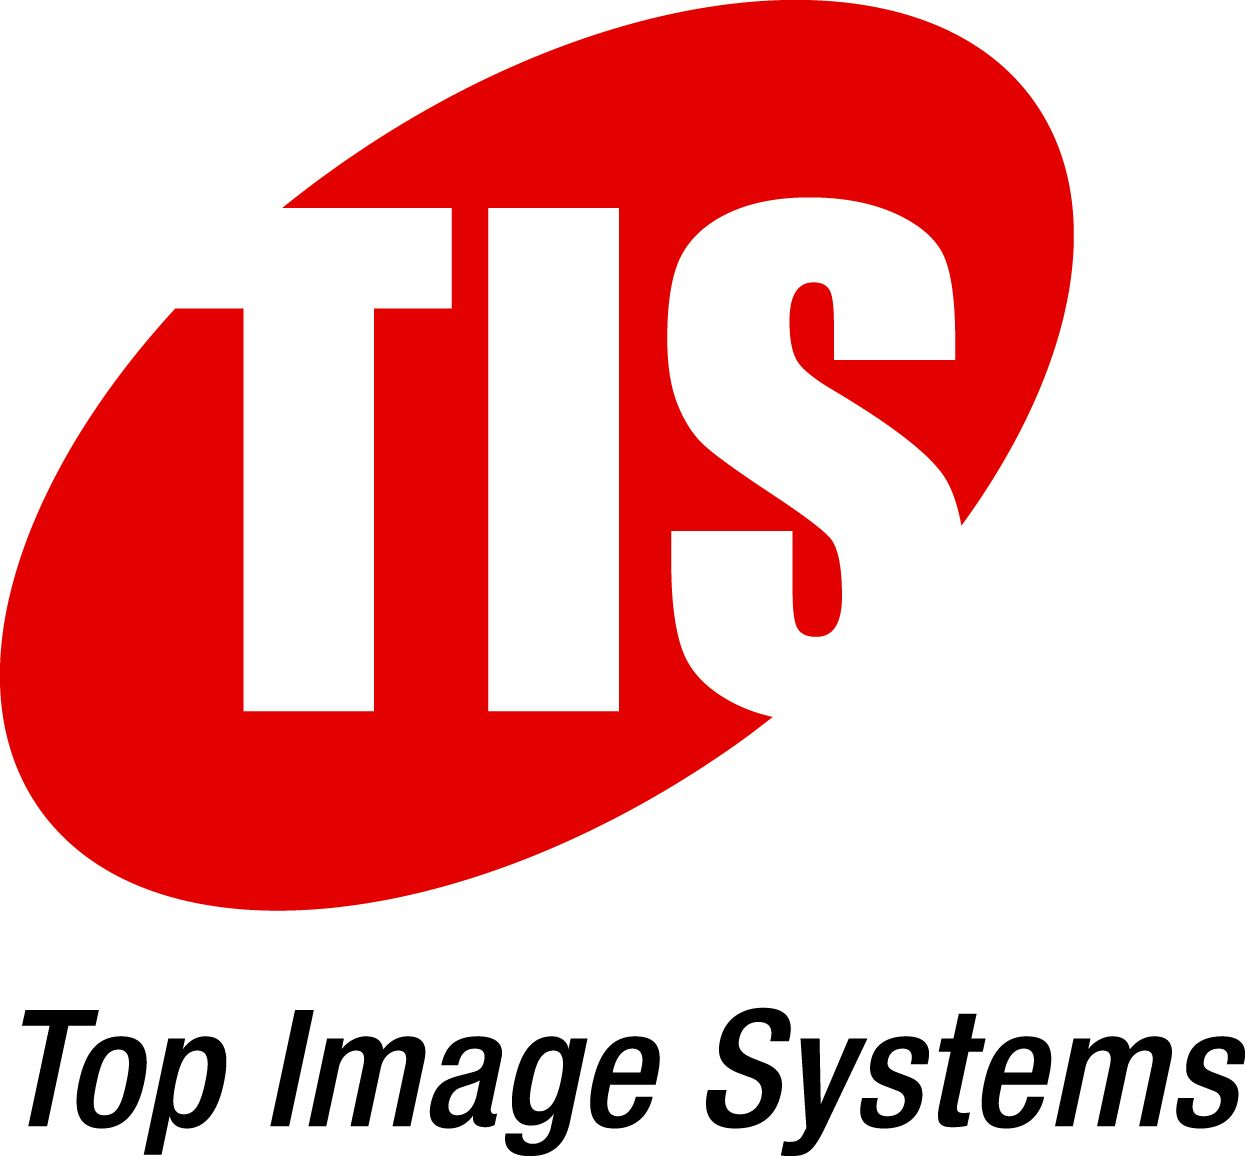 Top Image Systems First Quarter Earnings Results Release Scheduled for Tuesday, May 17, 2016